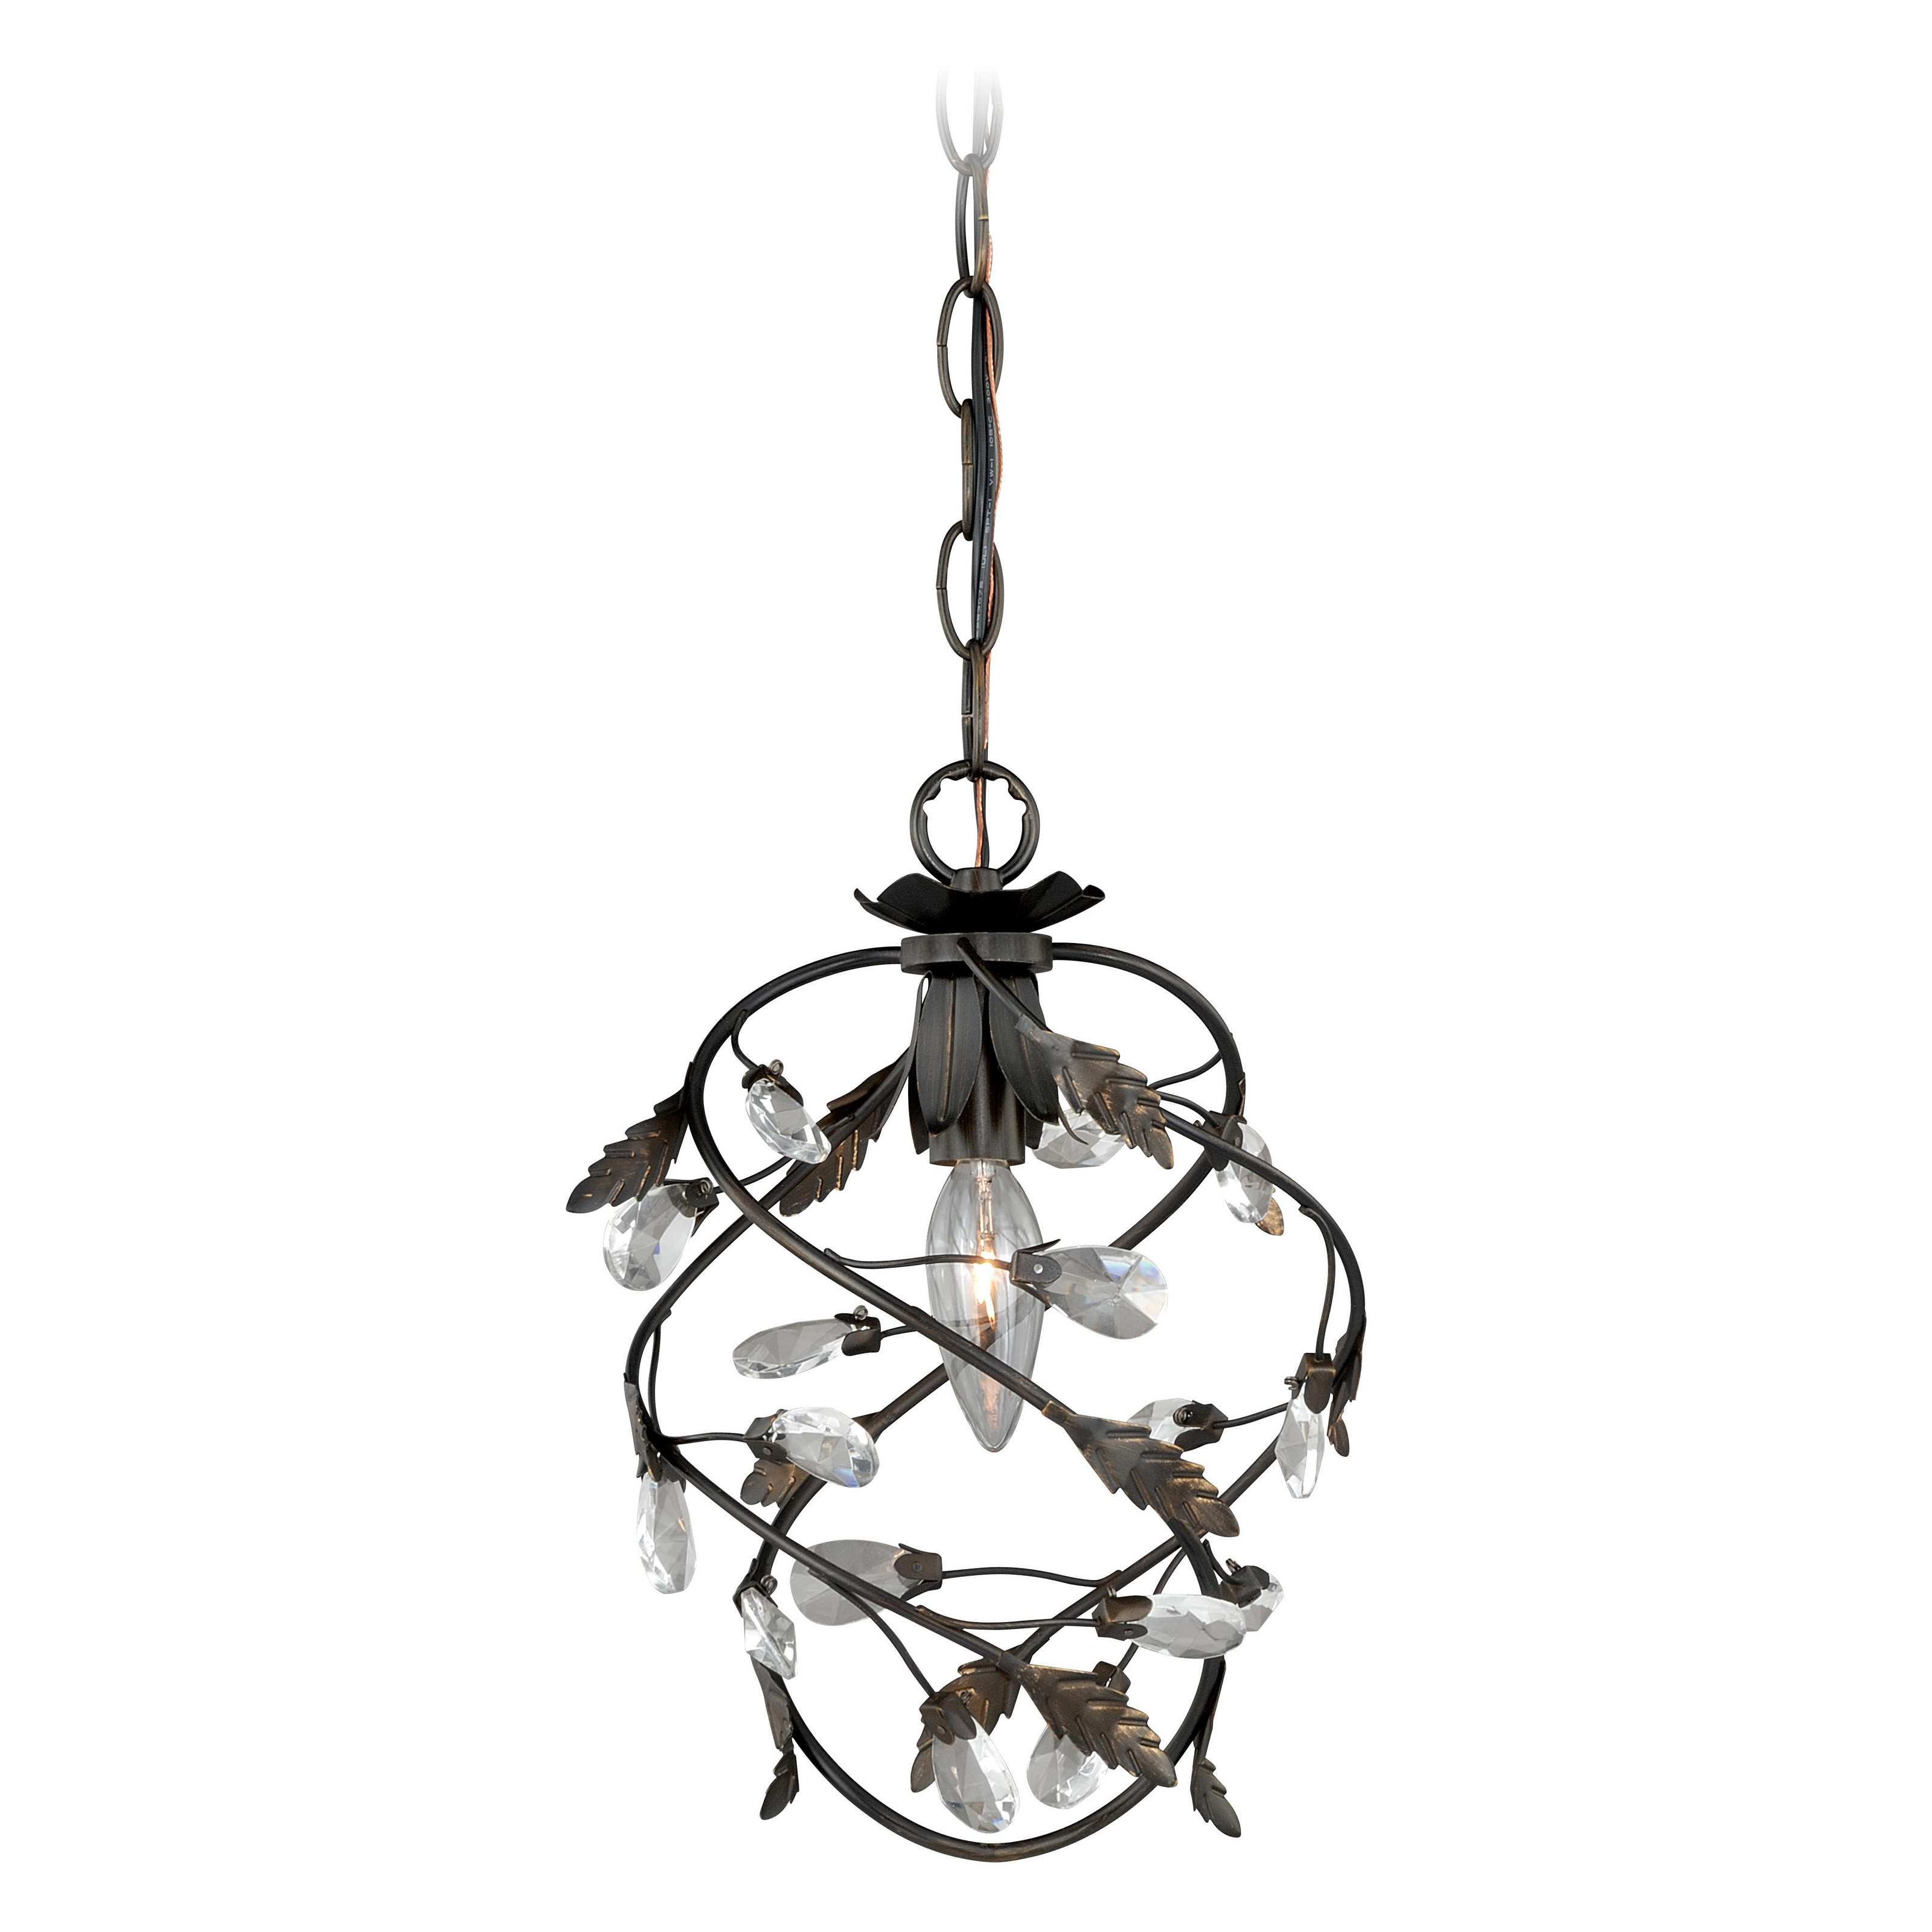 Vaxcel Trellis P Mini Pendant Light